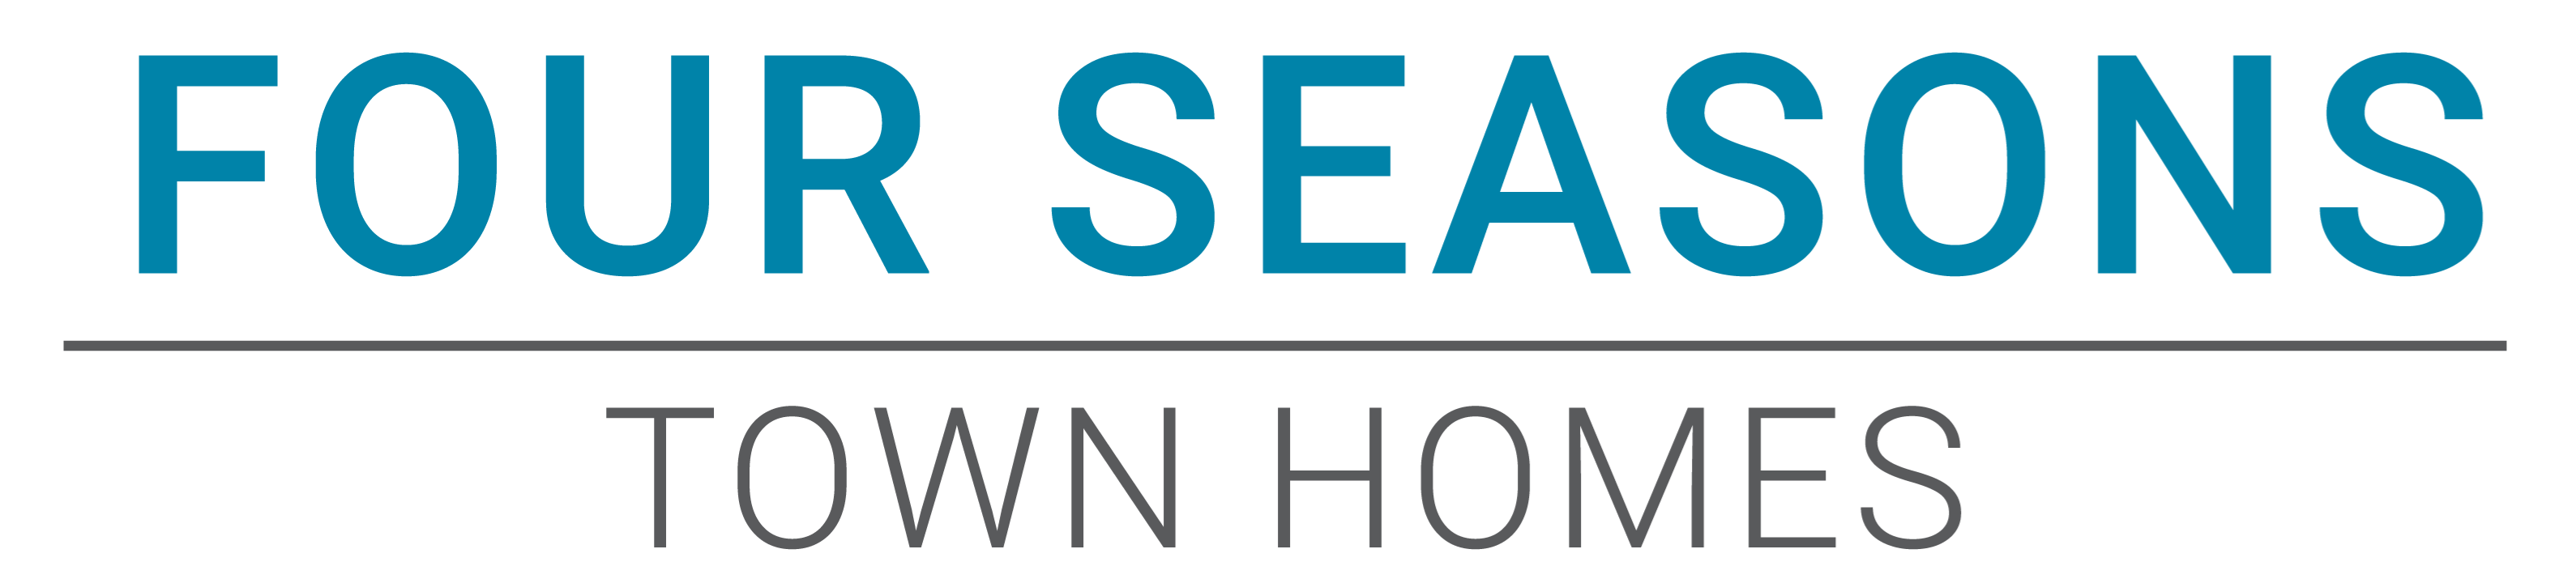 Four Seasons Town Homes Property Logo 5